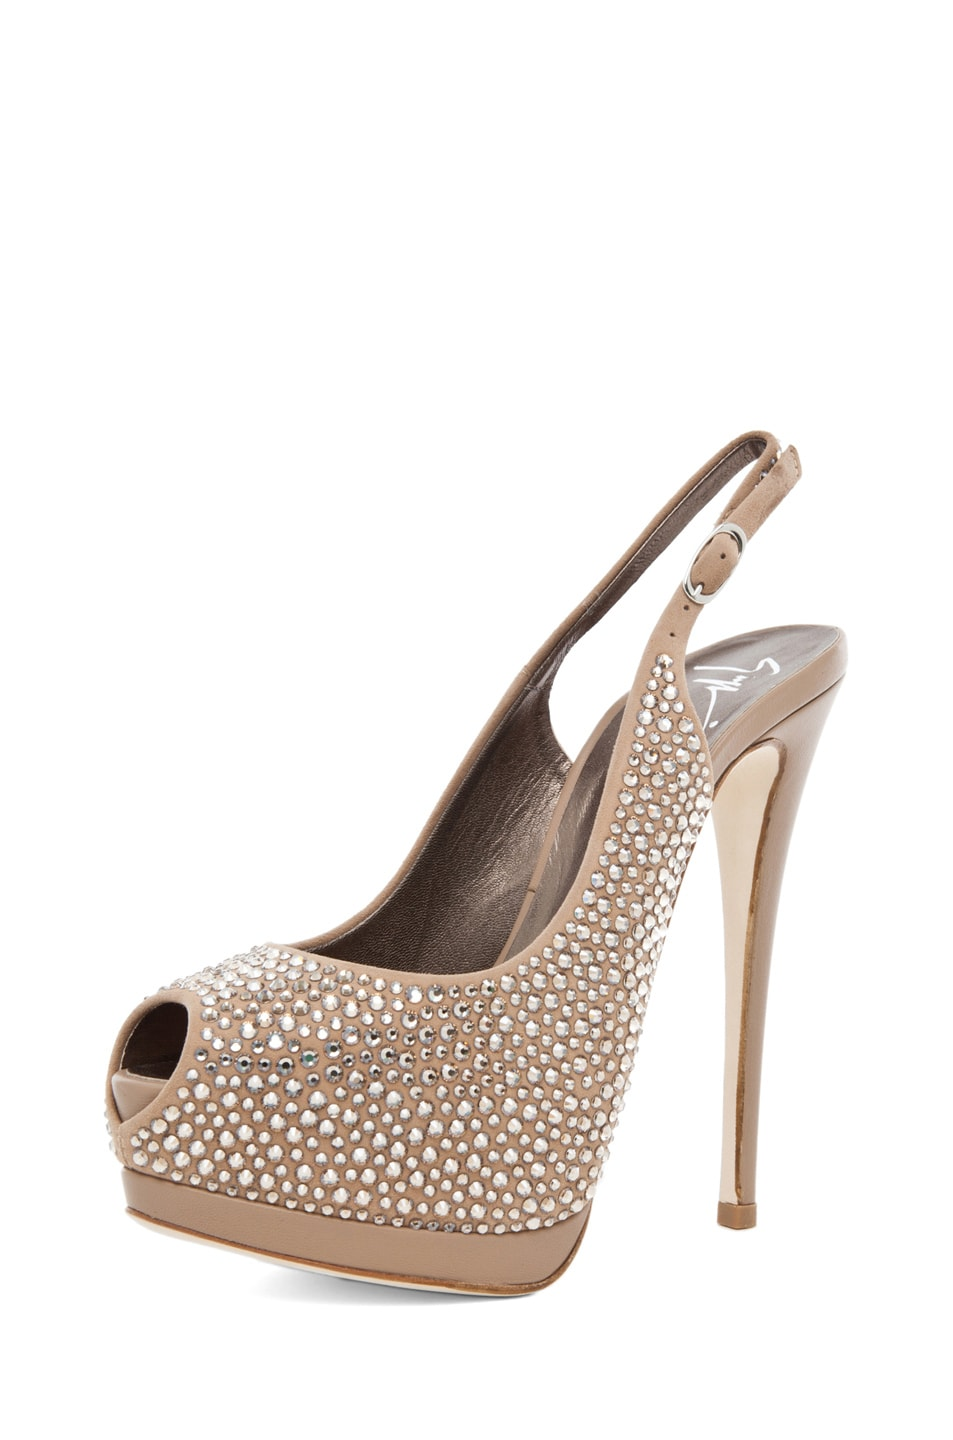 Image 2 of Giuseppe Zanotti Embellished Sling Back Pump in Nude